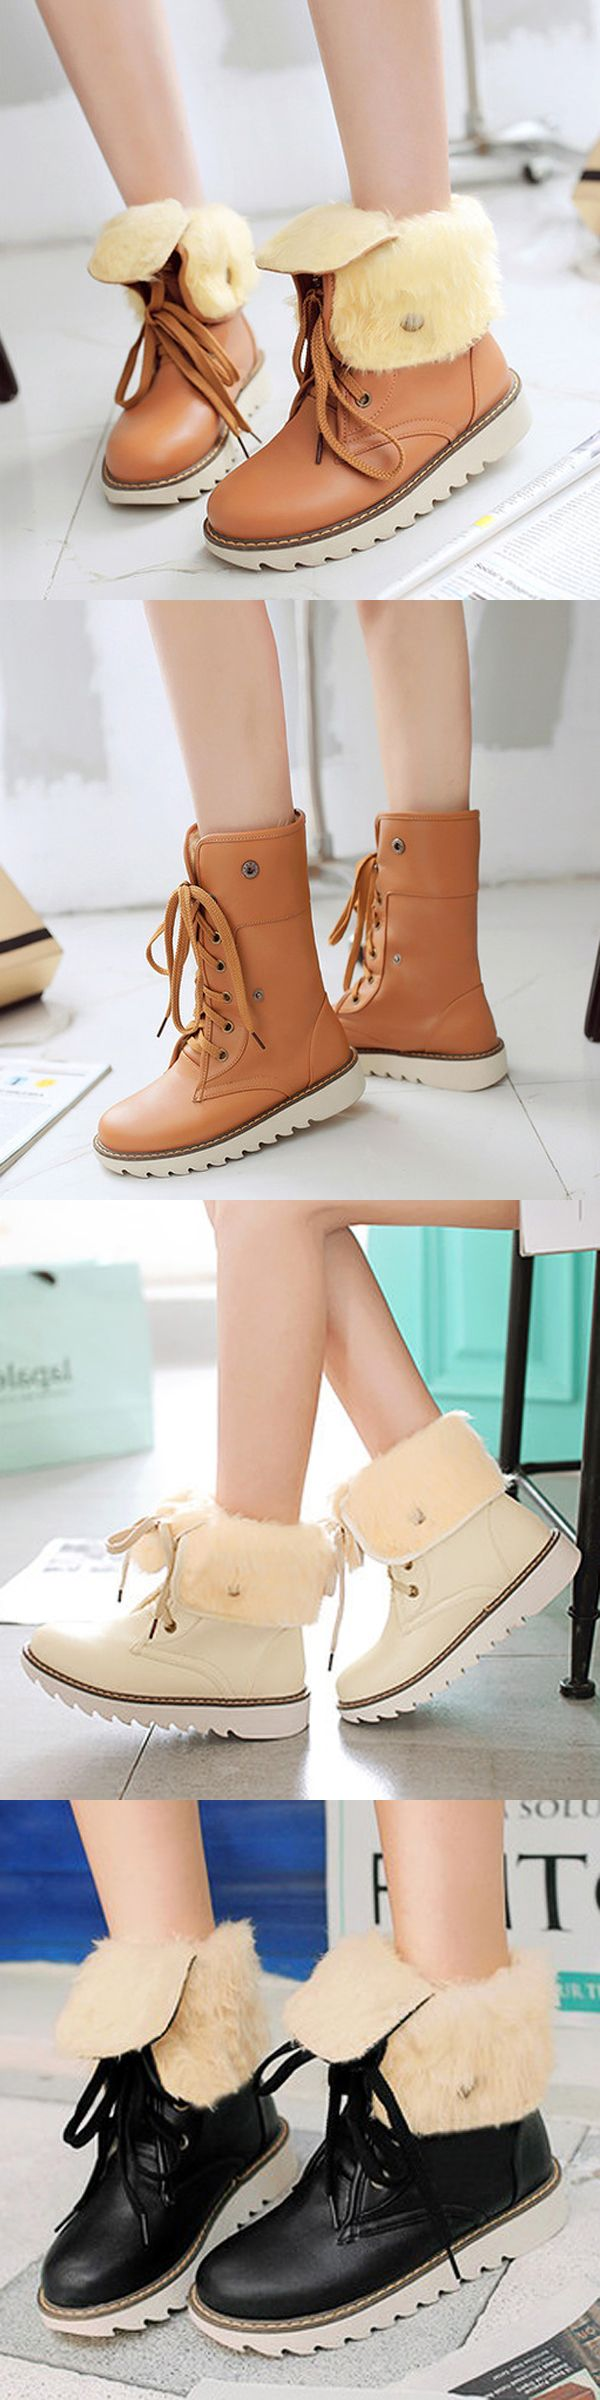 US$21.75 Big Size Multi-Way Button Warm Fur Lining Lace Up Flat Boots